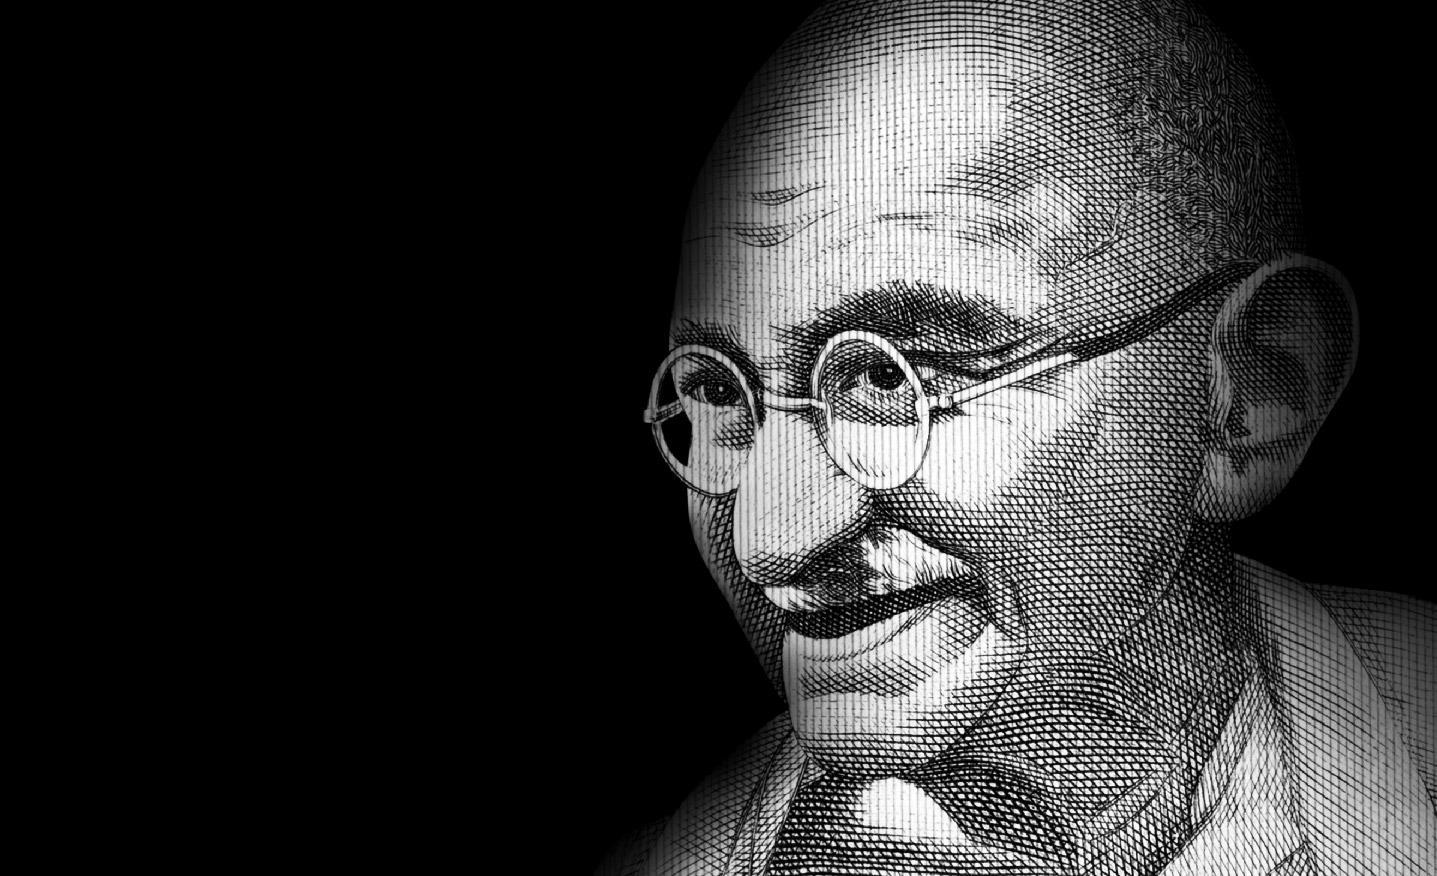 10 Life Lessons Your Child Can Learn From The Teachings Of Mahatma Gandhi